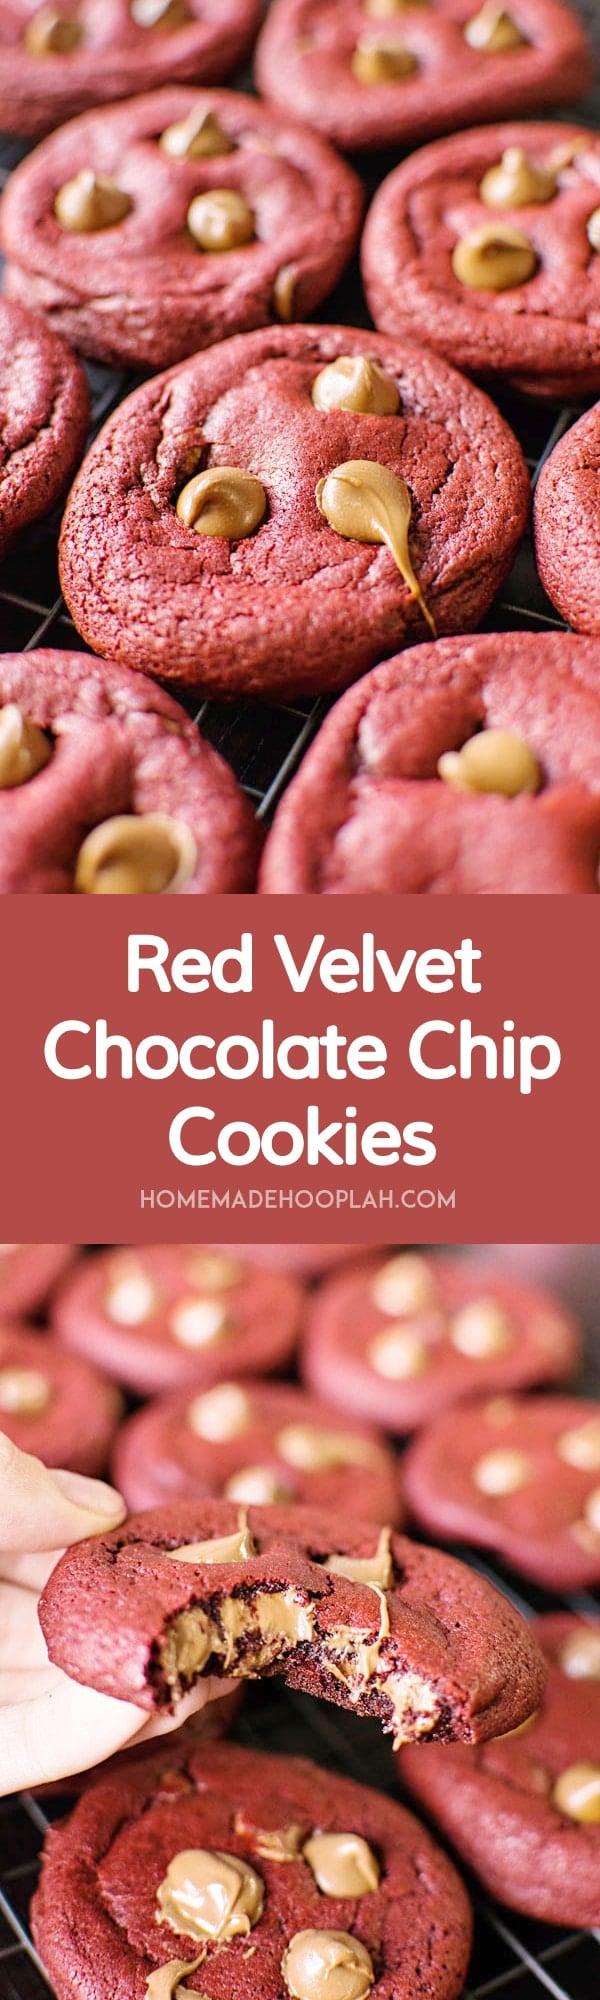 Red Velvet Chocolate Chip Cookies - Homemade Hooplah